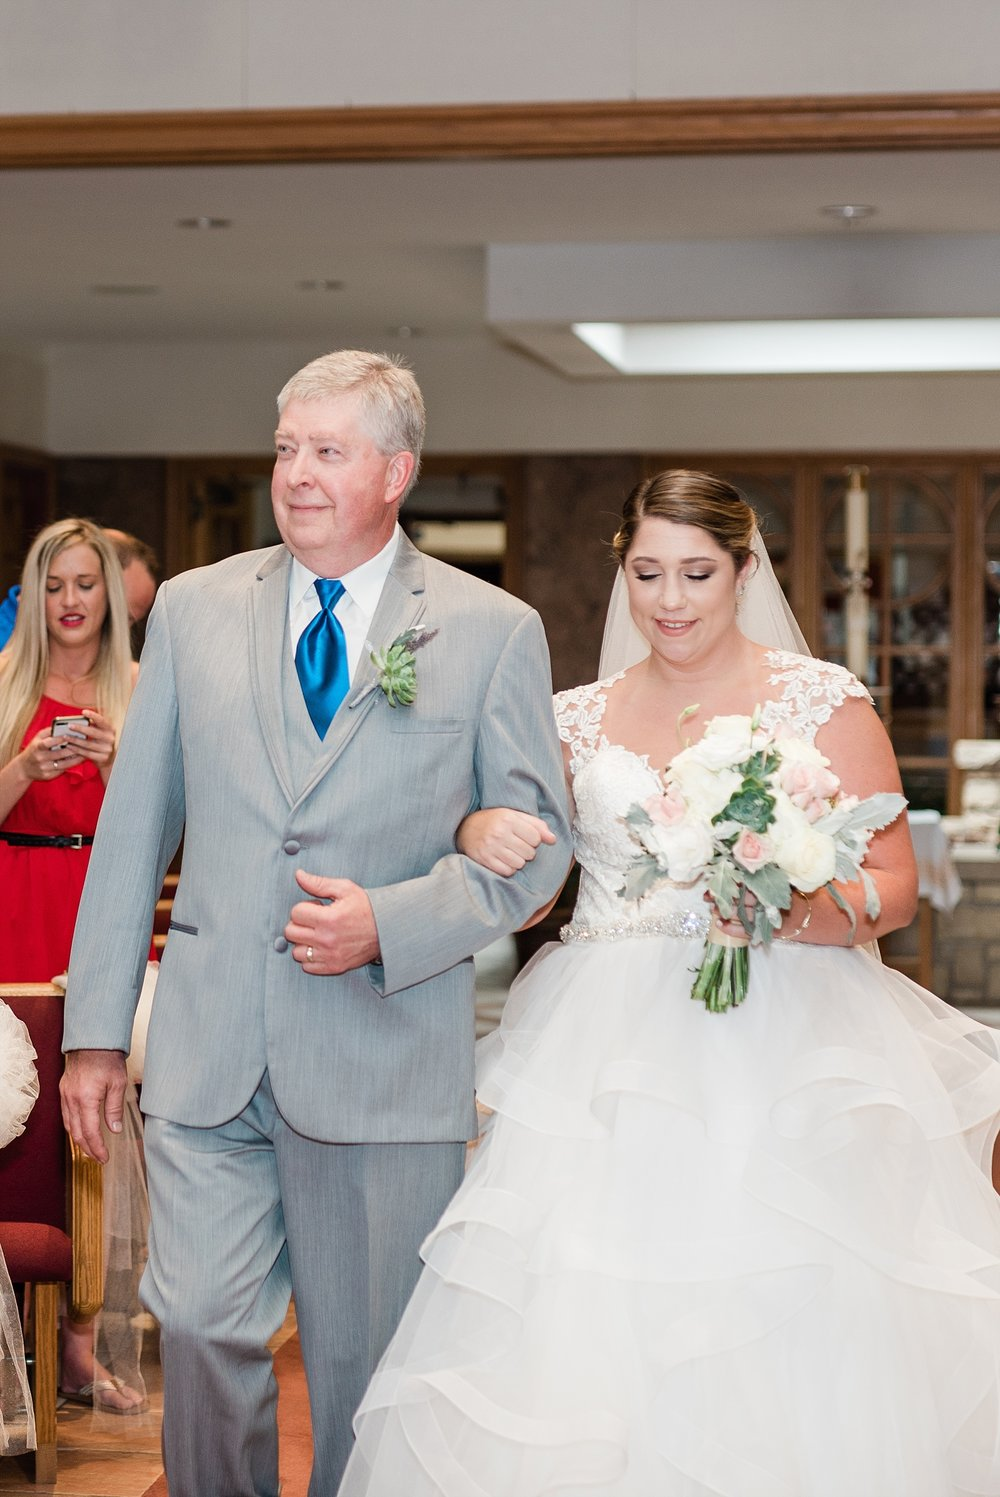 Baurichter Wedding at Stoney Creek Inn Columbia Missouri by Kelsi Kliethermes Photography_0011.jpg